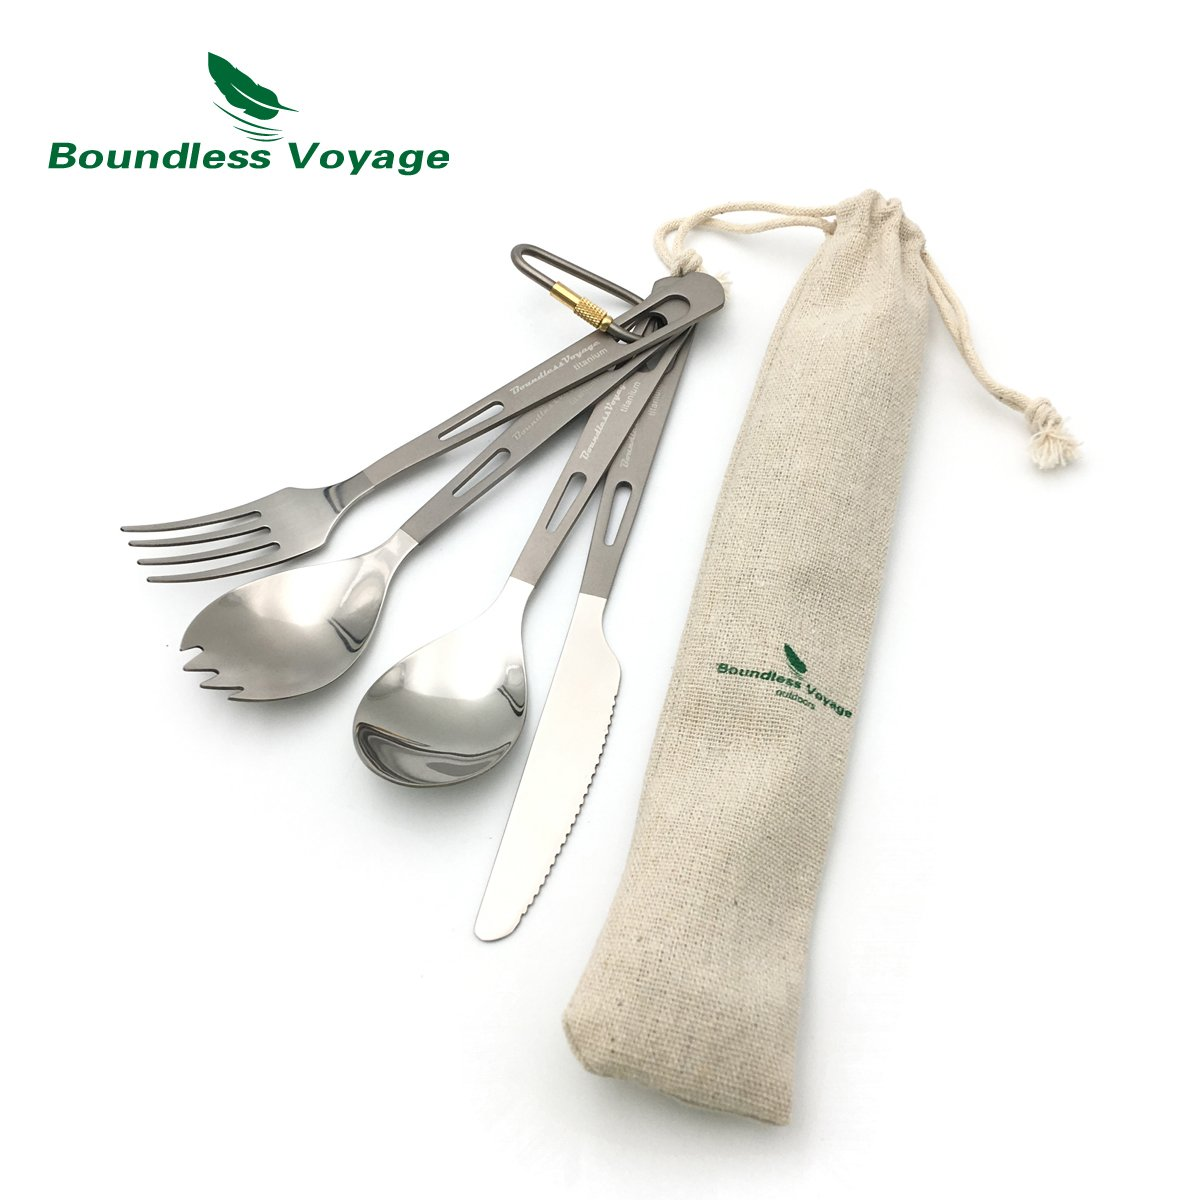 Boundless Voyage Titanium Spoon Dinner Soup Spoon Picnic Outdoor Flatware